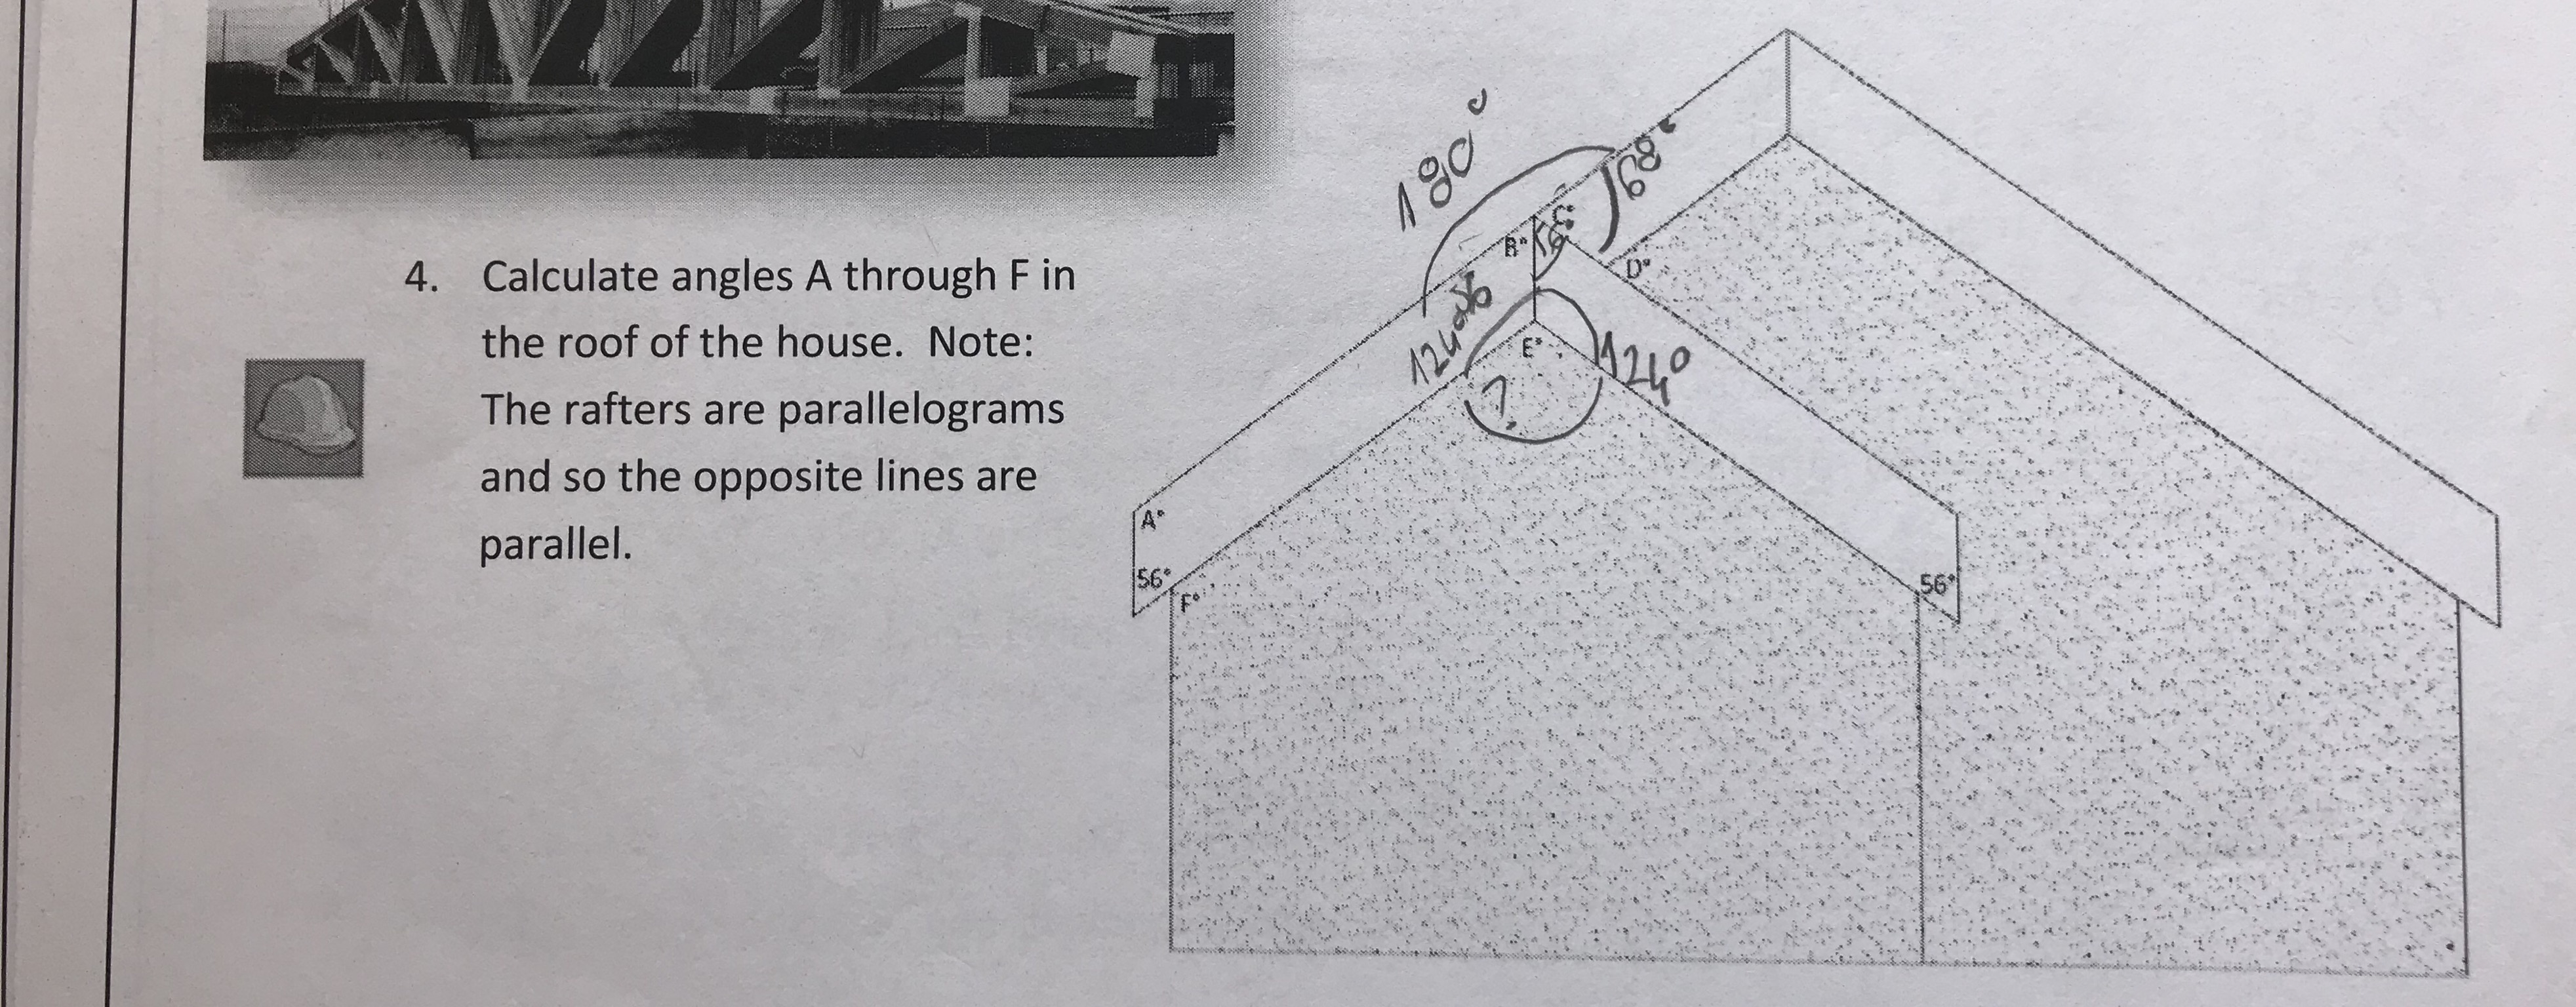 Calculate angles A through F in the roof of the house. Note: The rafters are parallelograms and so the opposite lines are parallel 4. 56 56